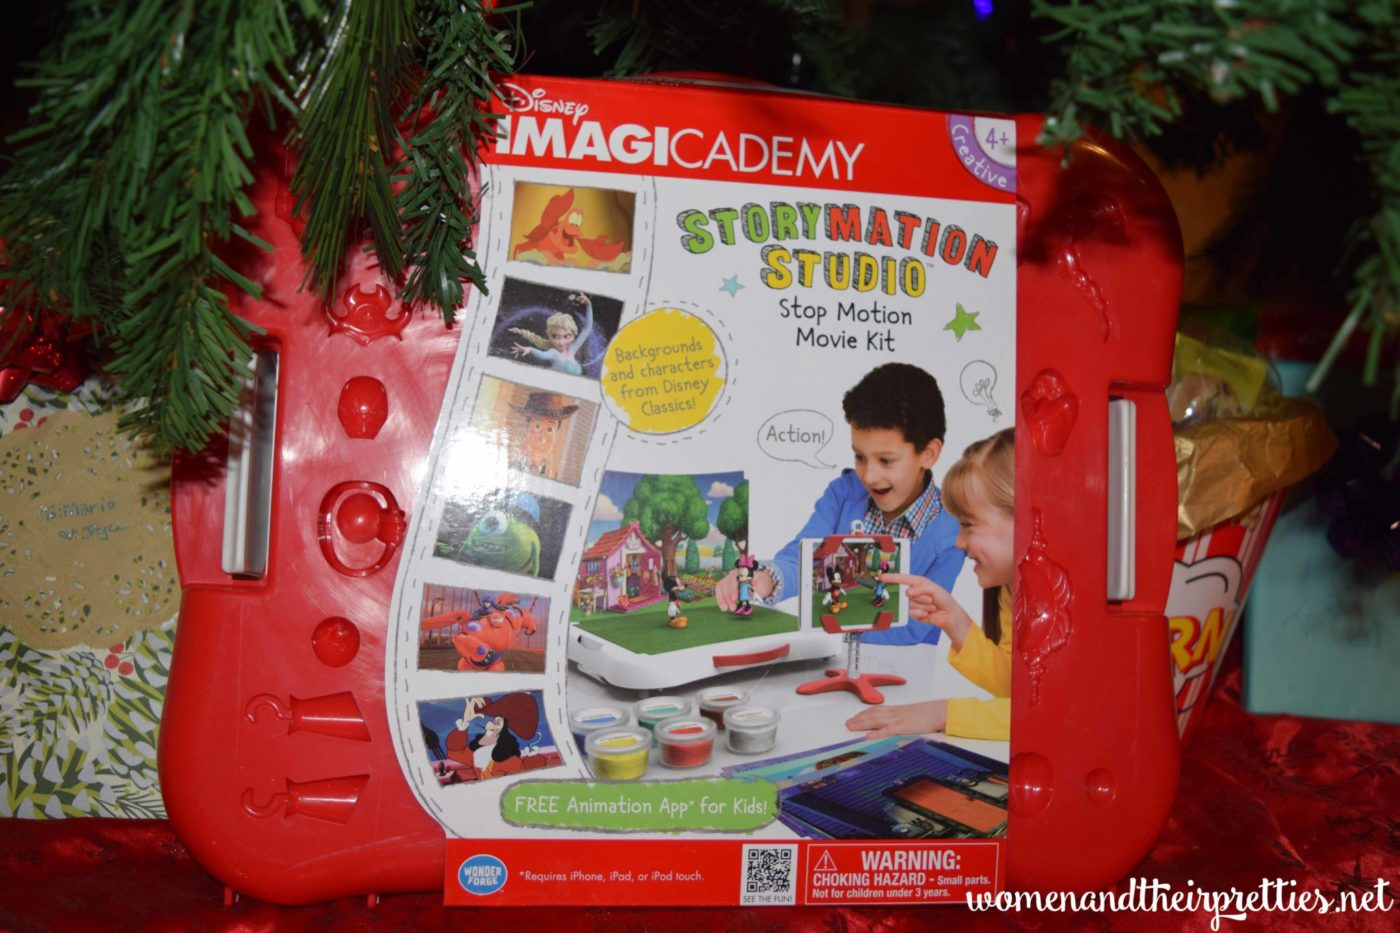 Disney Imagicademy Storymation Studio Stop Motion Movie Kit #Wonderforge